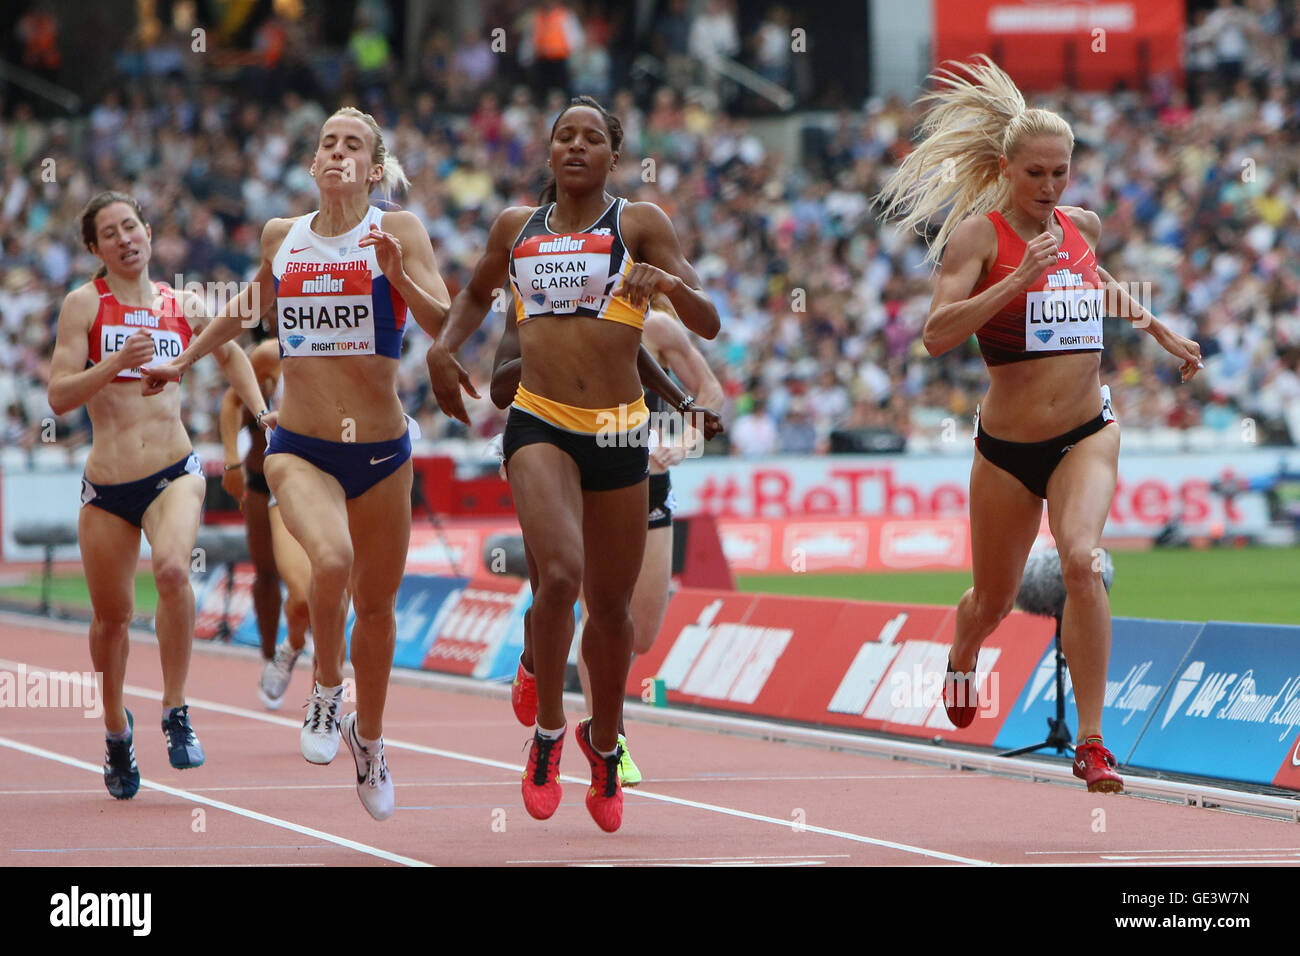 London, UK. 23rd July 2016. London, UK. IAAF Diamond Leauge Anniversary Games. Lynsey Sharp finishes in second in - Stock Image